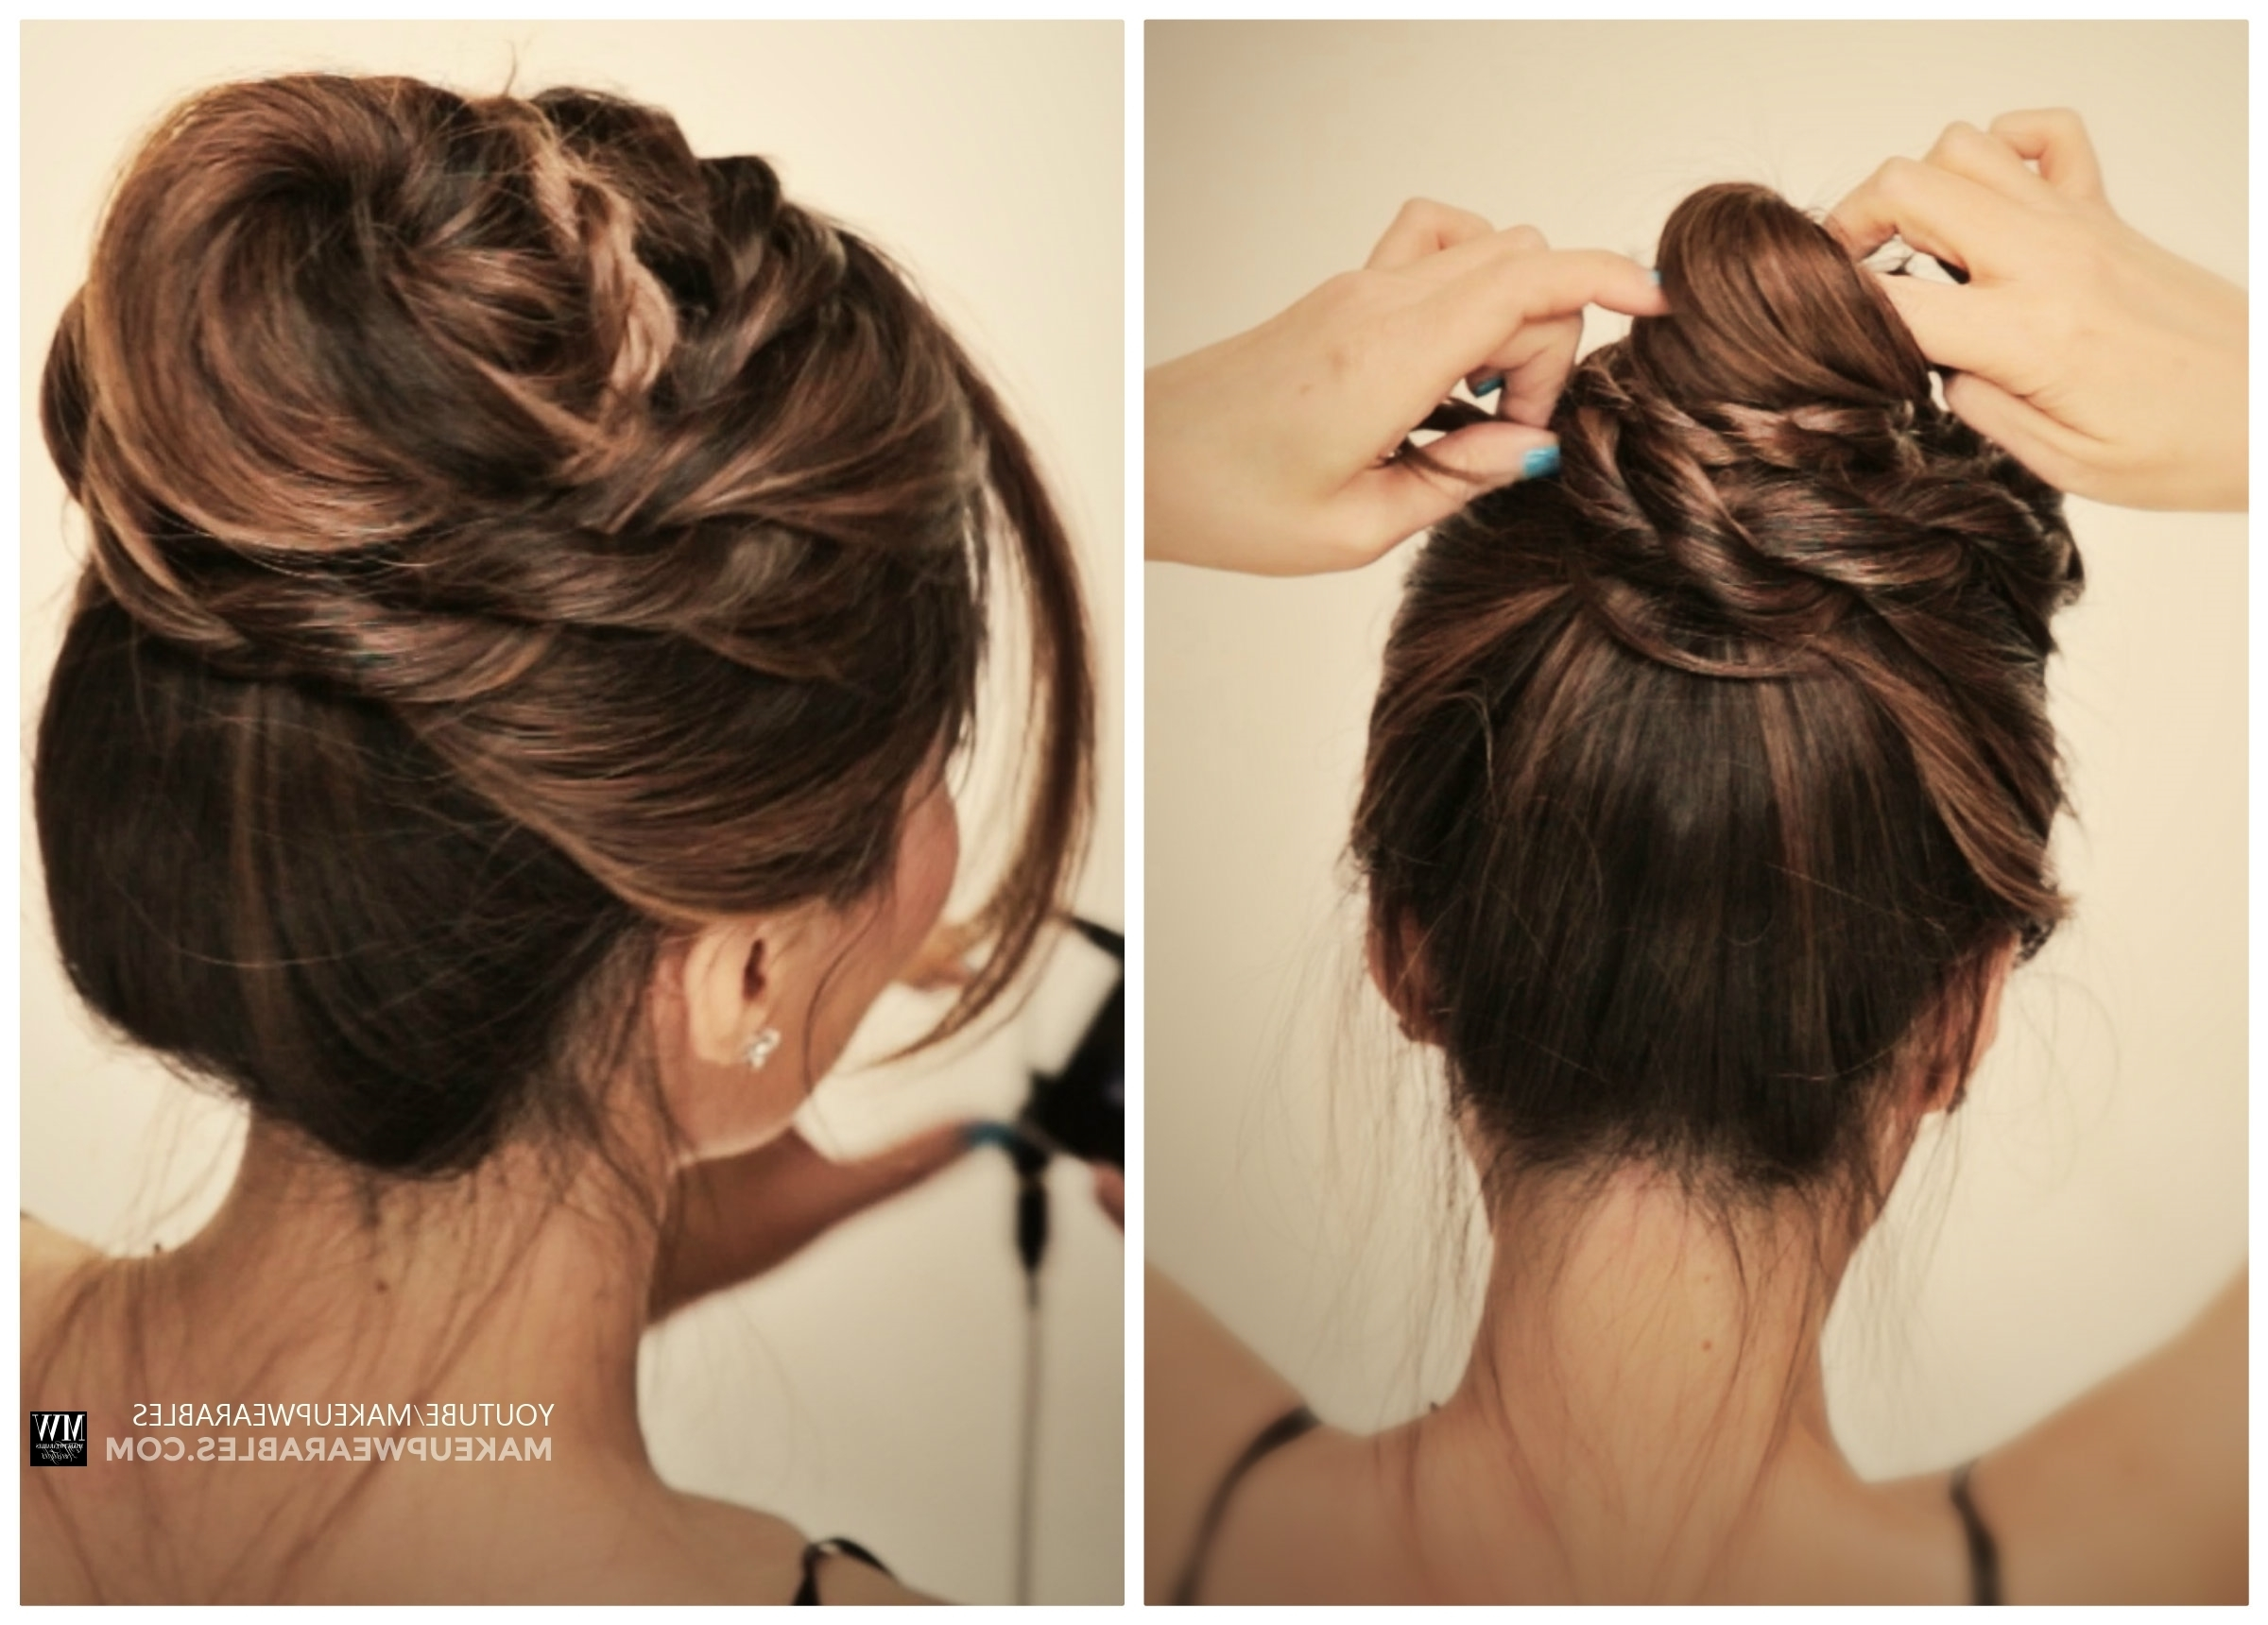 How To: 5 Amazingly Cute + Easy Hairstyles With A Simple Twist Throughout Recent Easy Casual Braided Updo Hairstyles (View 6 of 15)